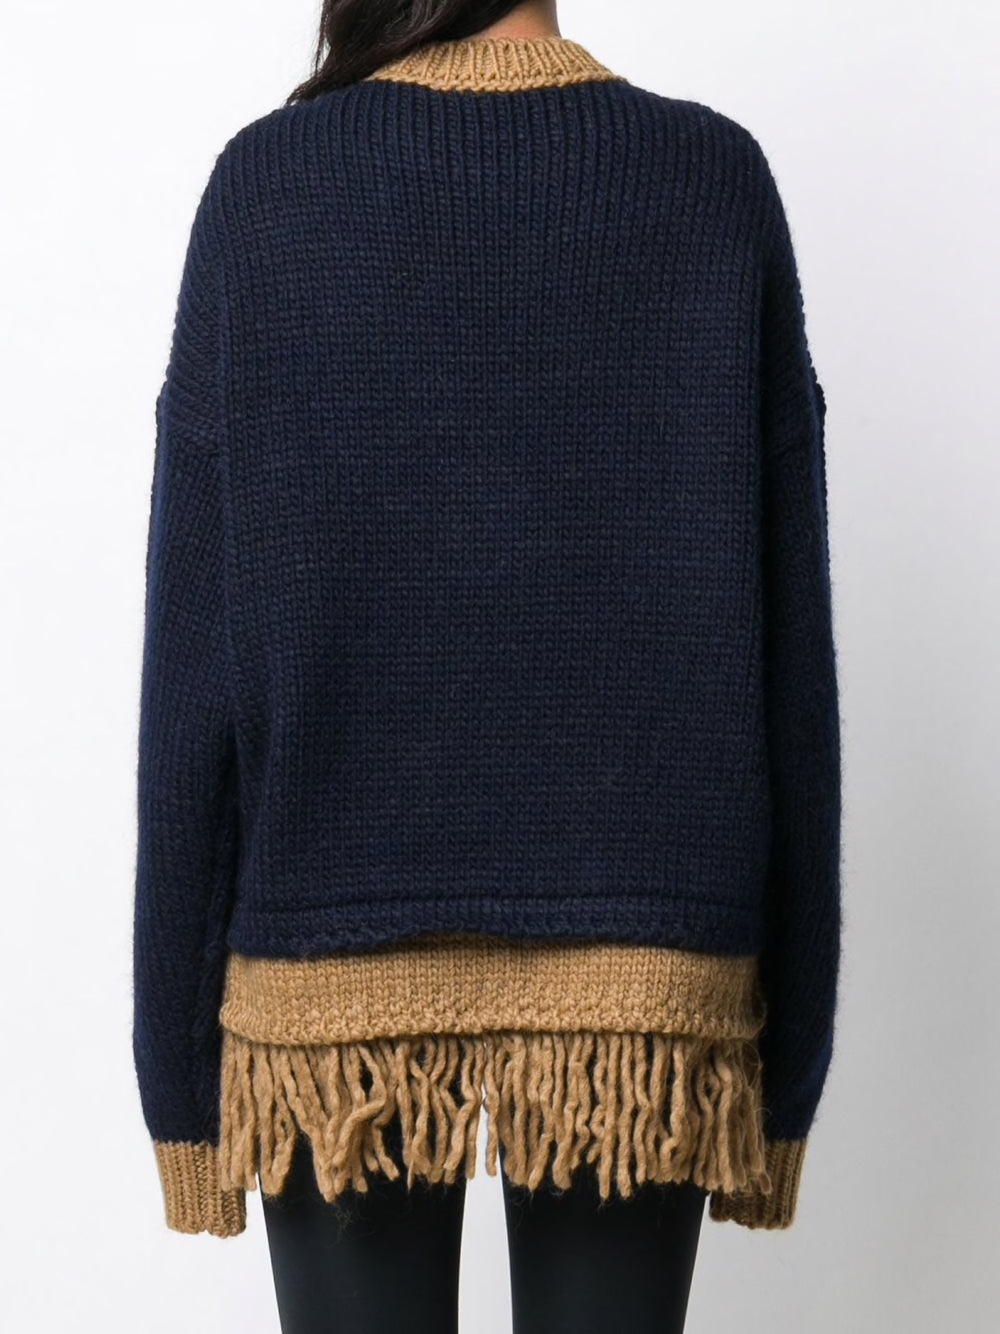 PALM ANGELS PALM BEAR FRINGED SWEATER